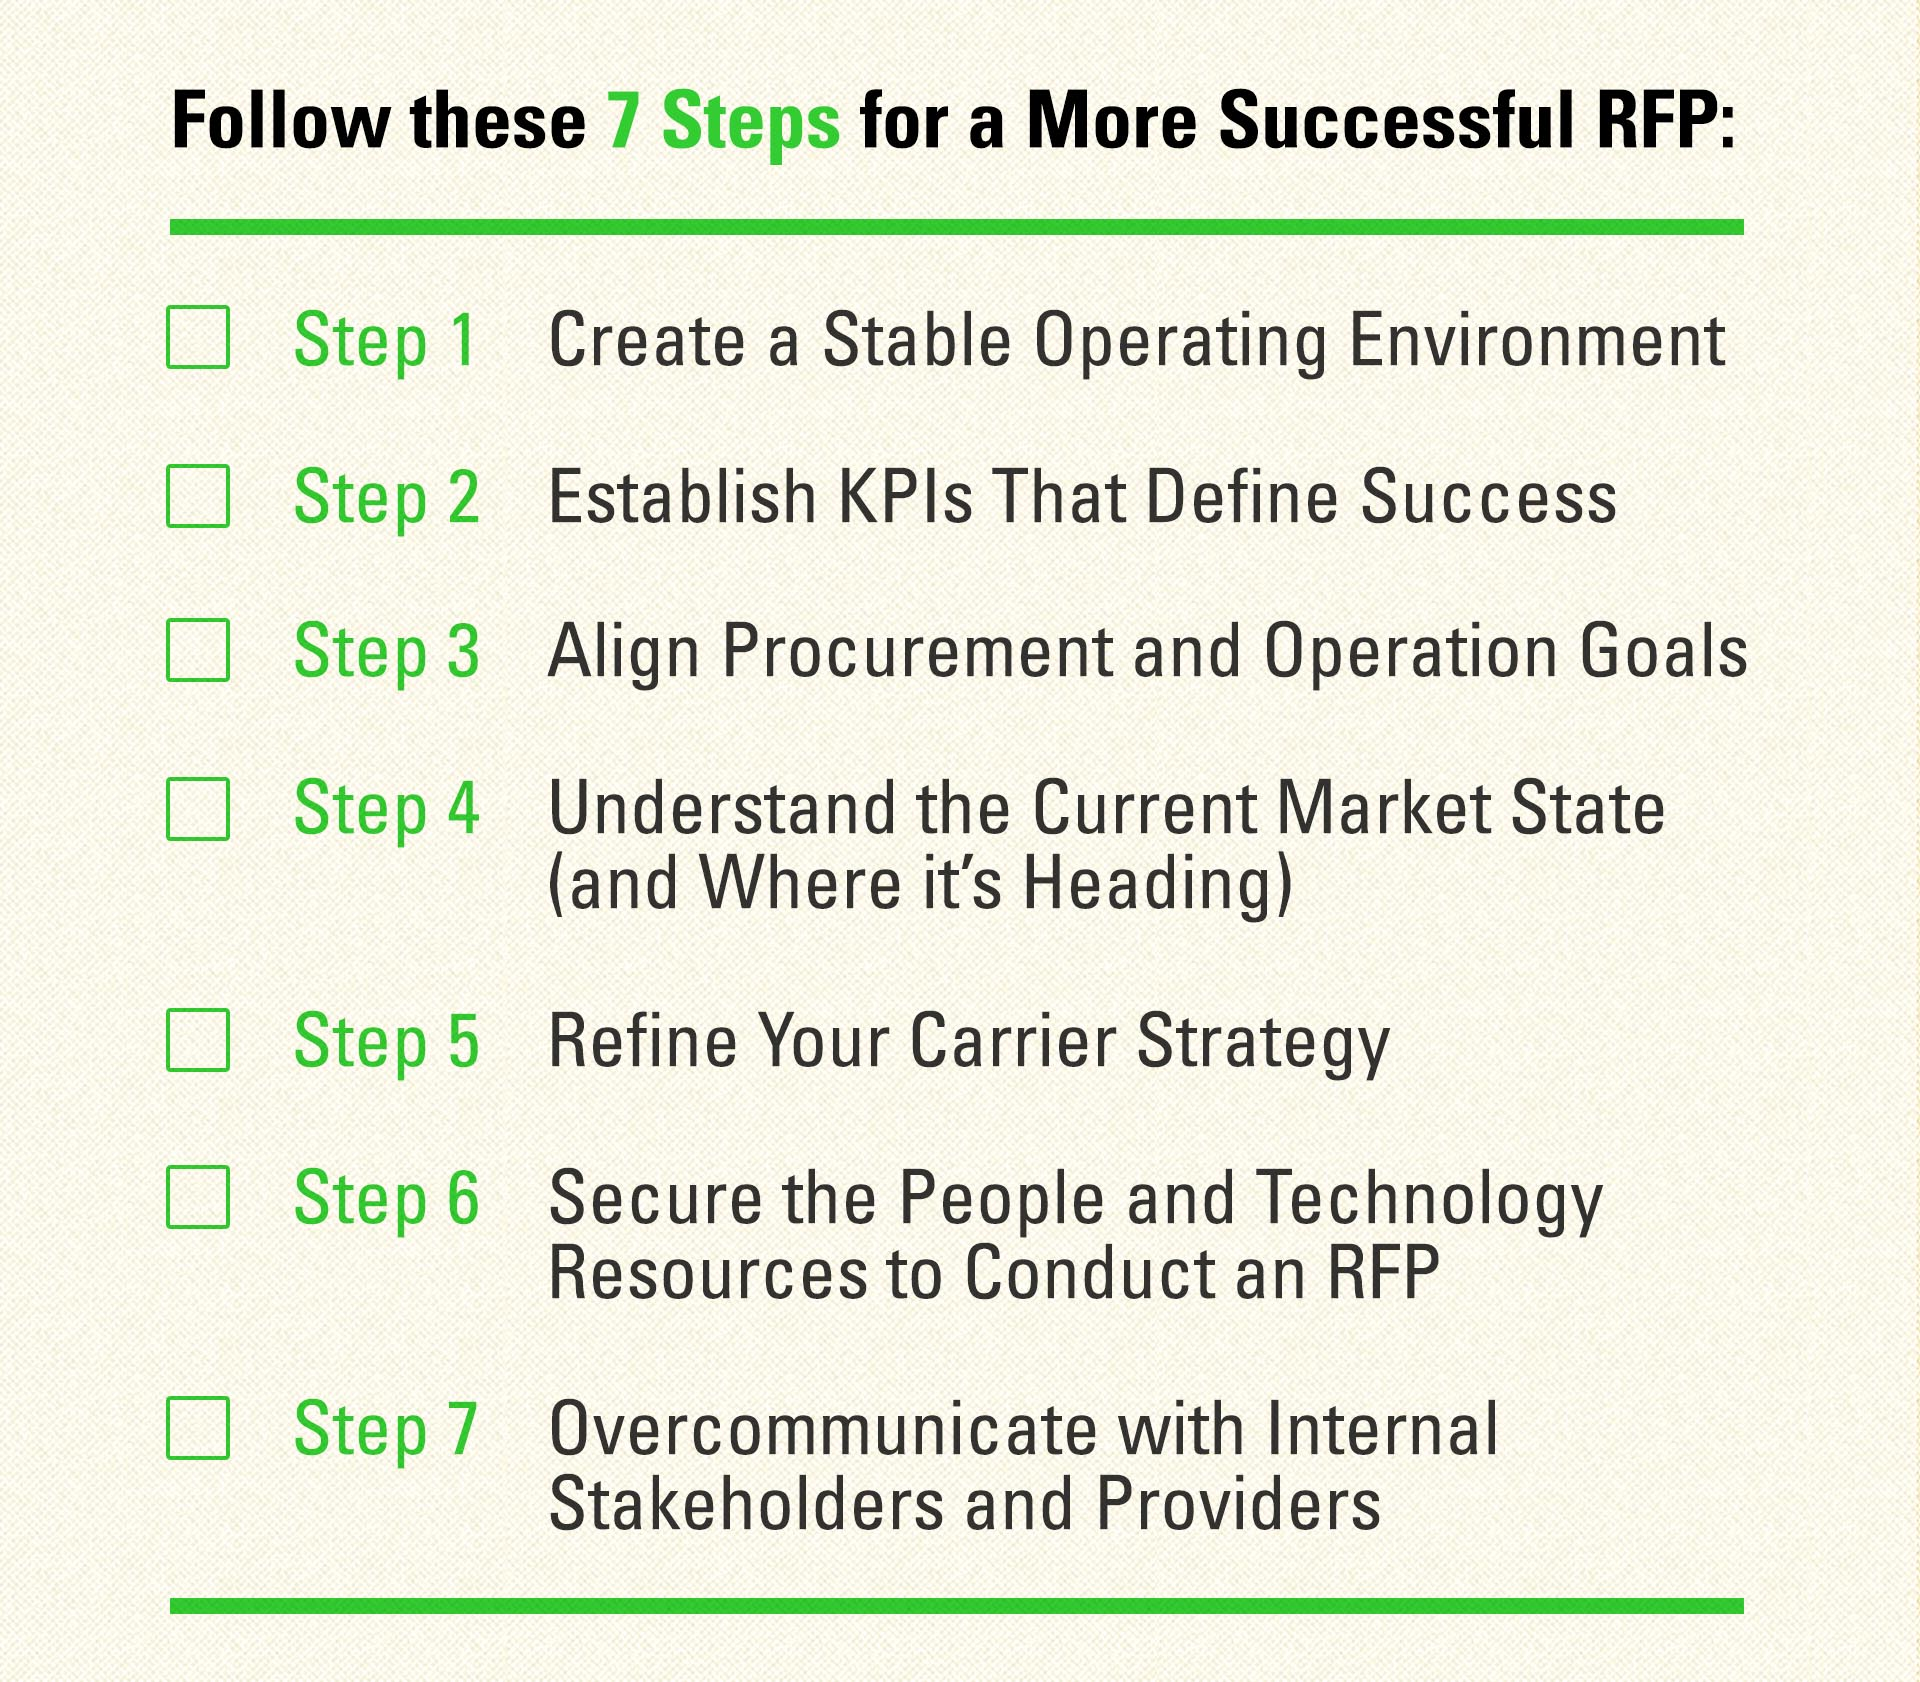 Seven Steps for a more successful RFP